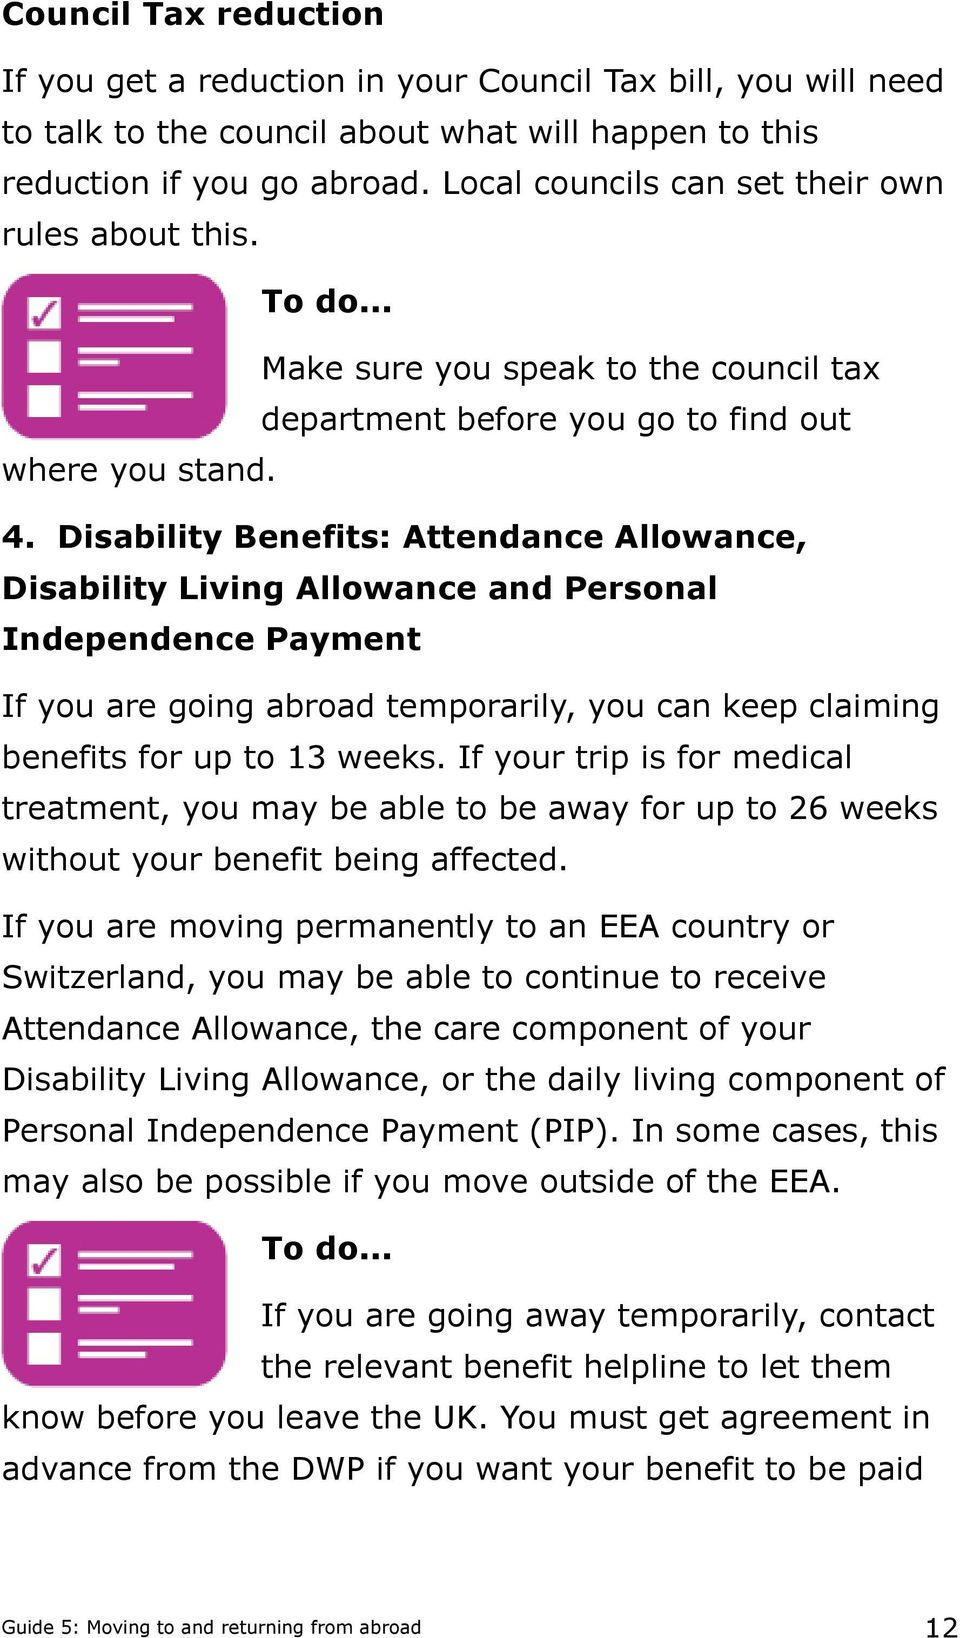 Disability Benefits: Attendance Allowance, Disability Living Allowance and Personal Independence Payment If you are going abroad temporarily, you can keep claiming benefits for up to 13 weeks.